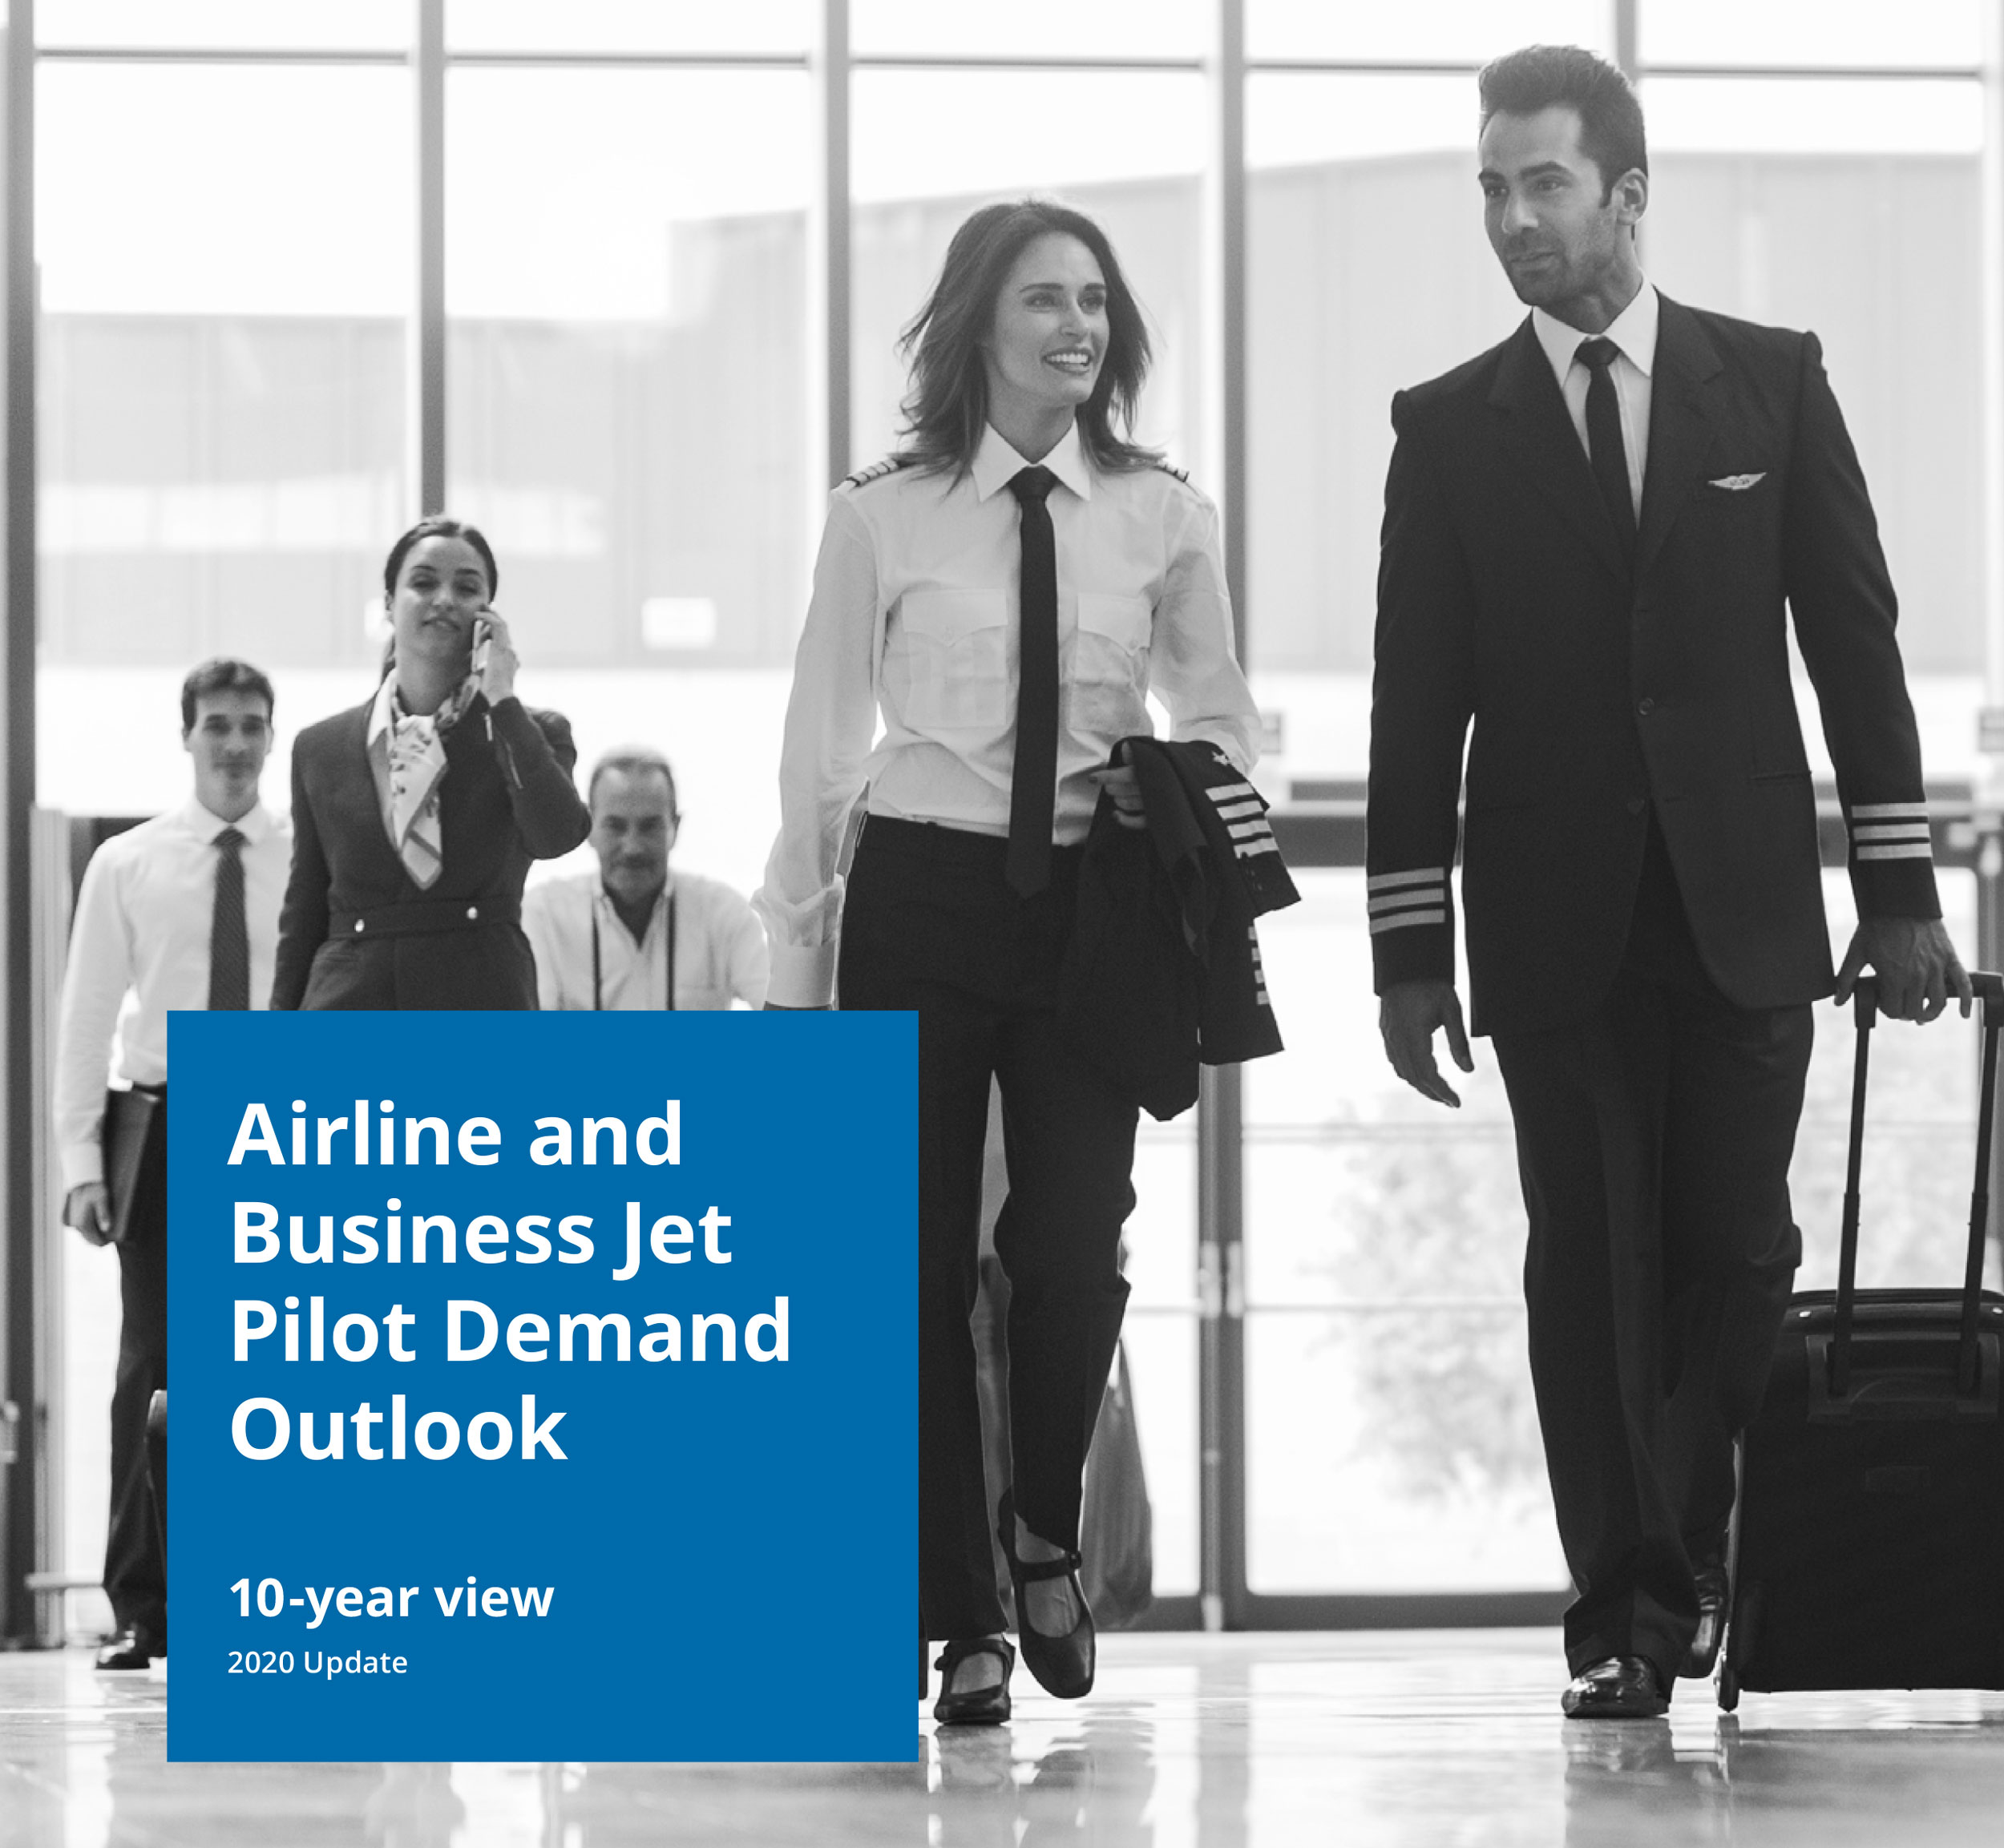 CAE pilot outlook 2020